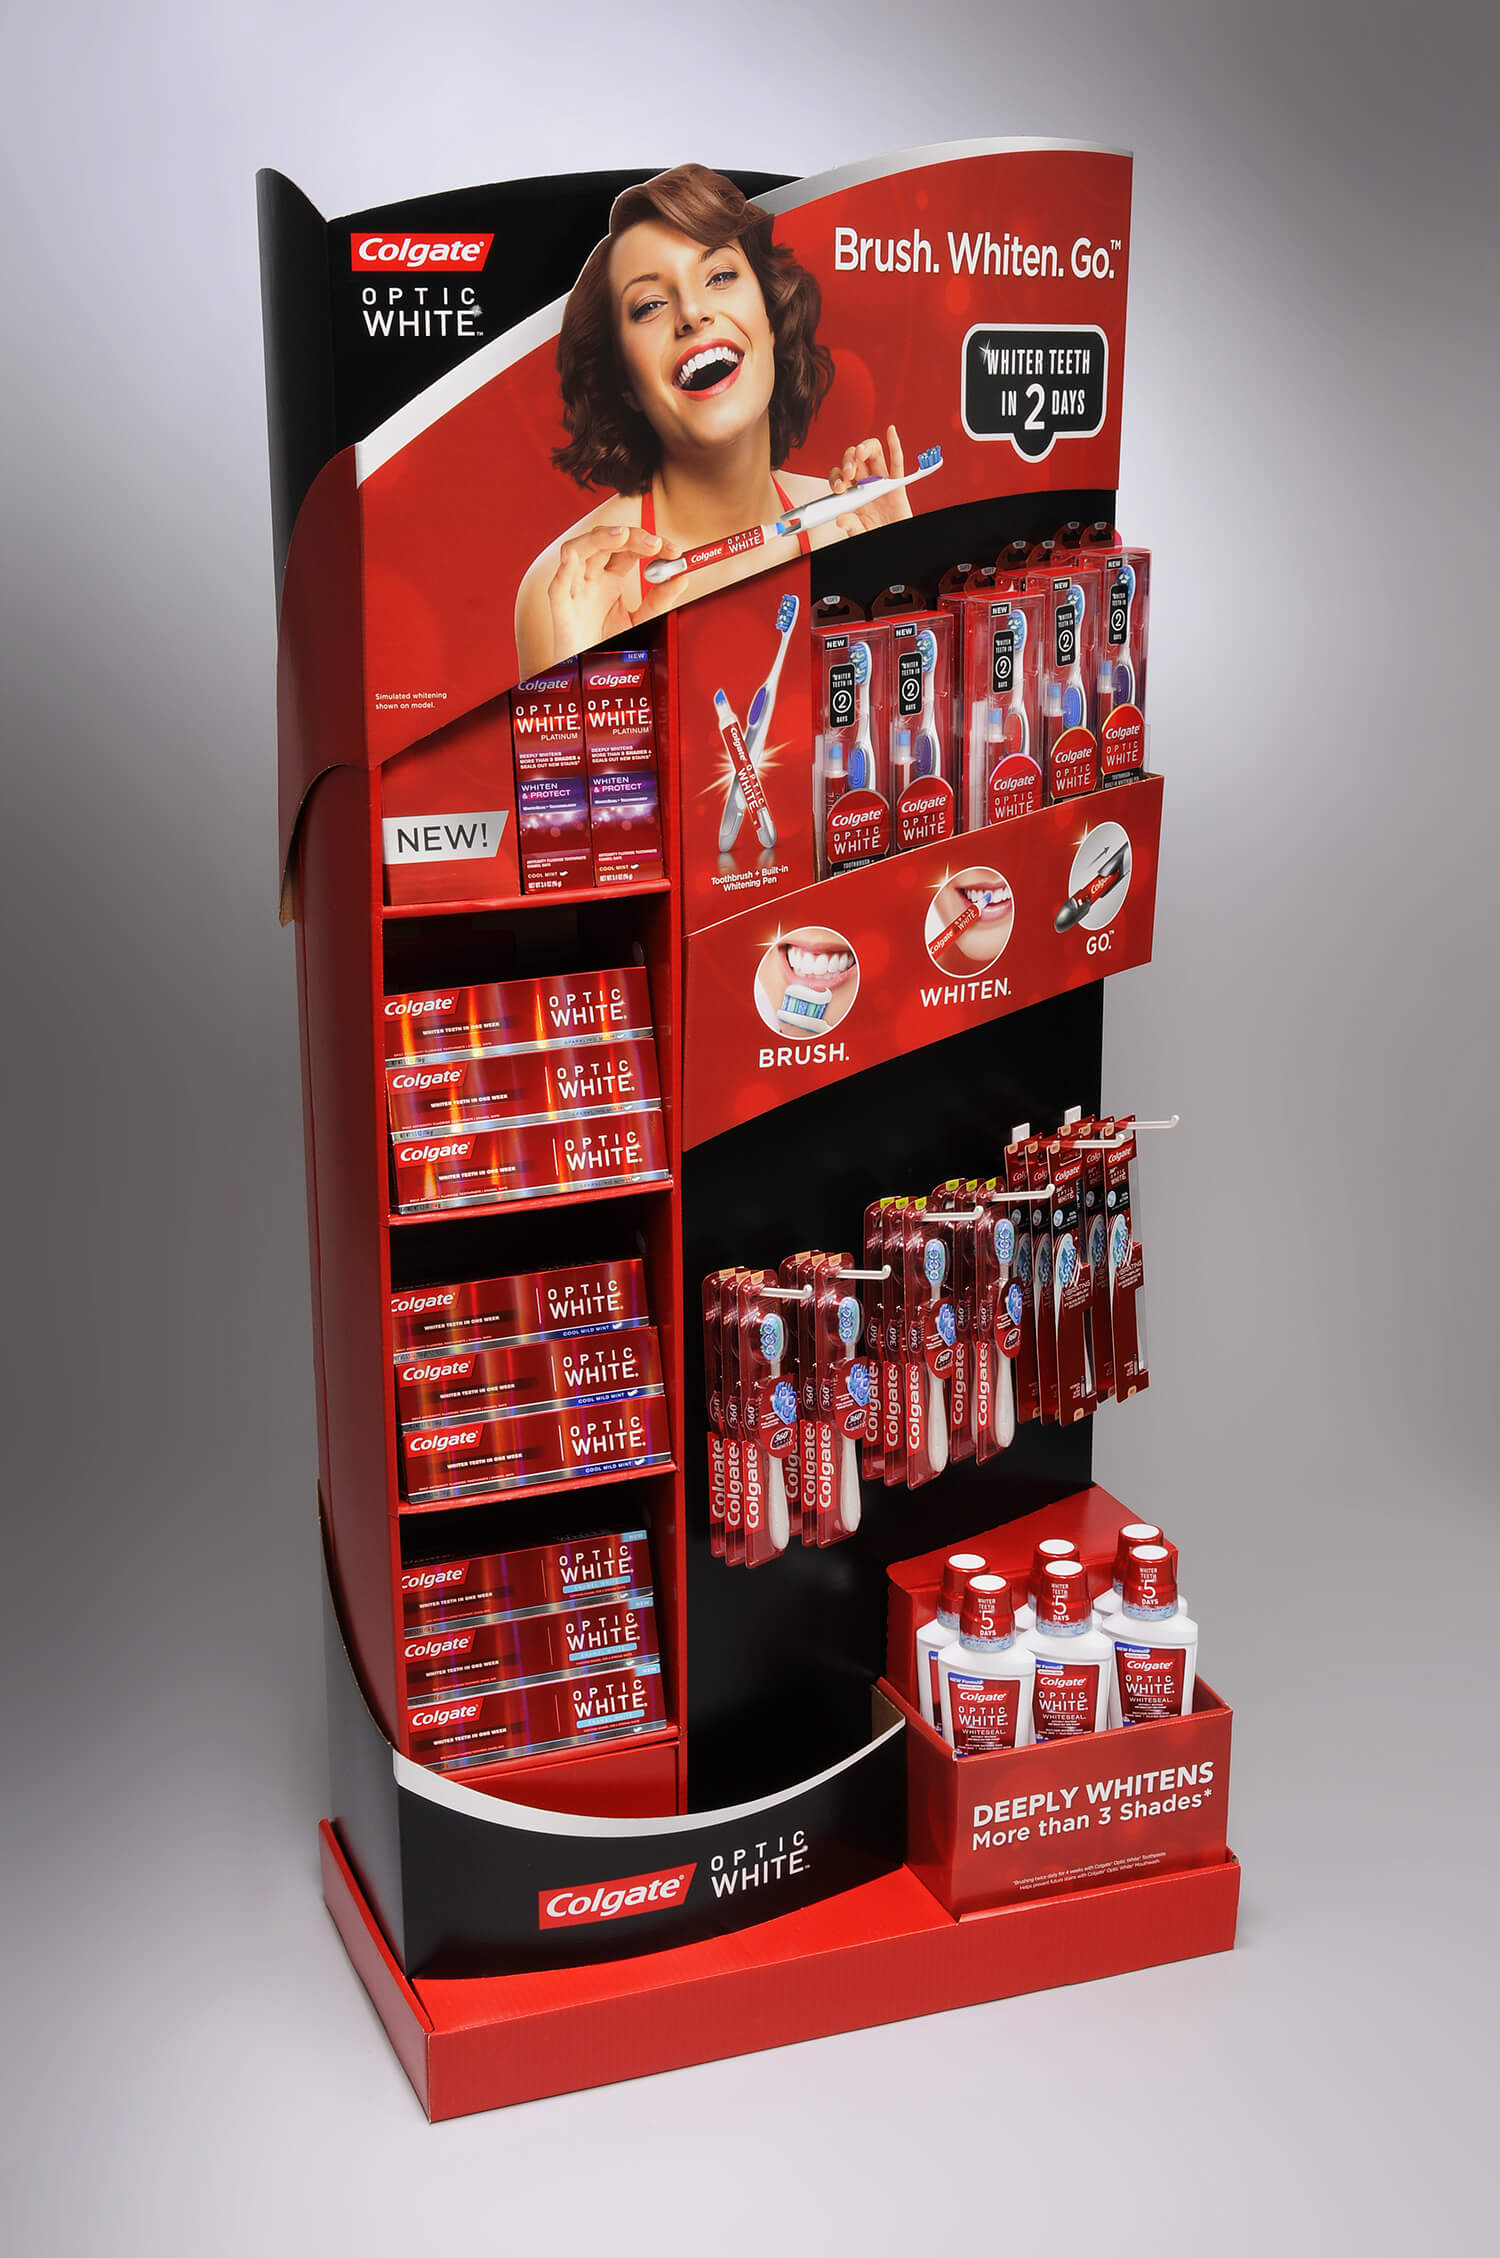 Colgate Optiwhite EC toothbrush and toothpaste retail product display.